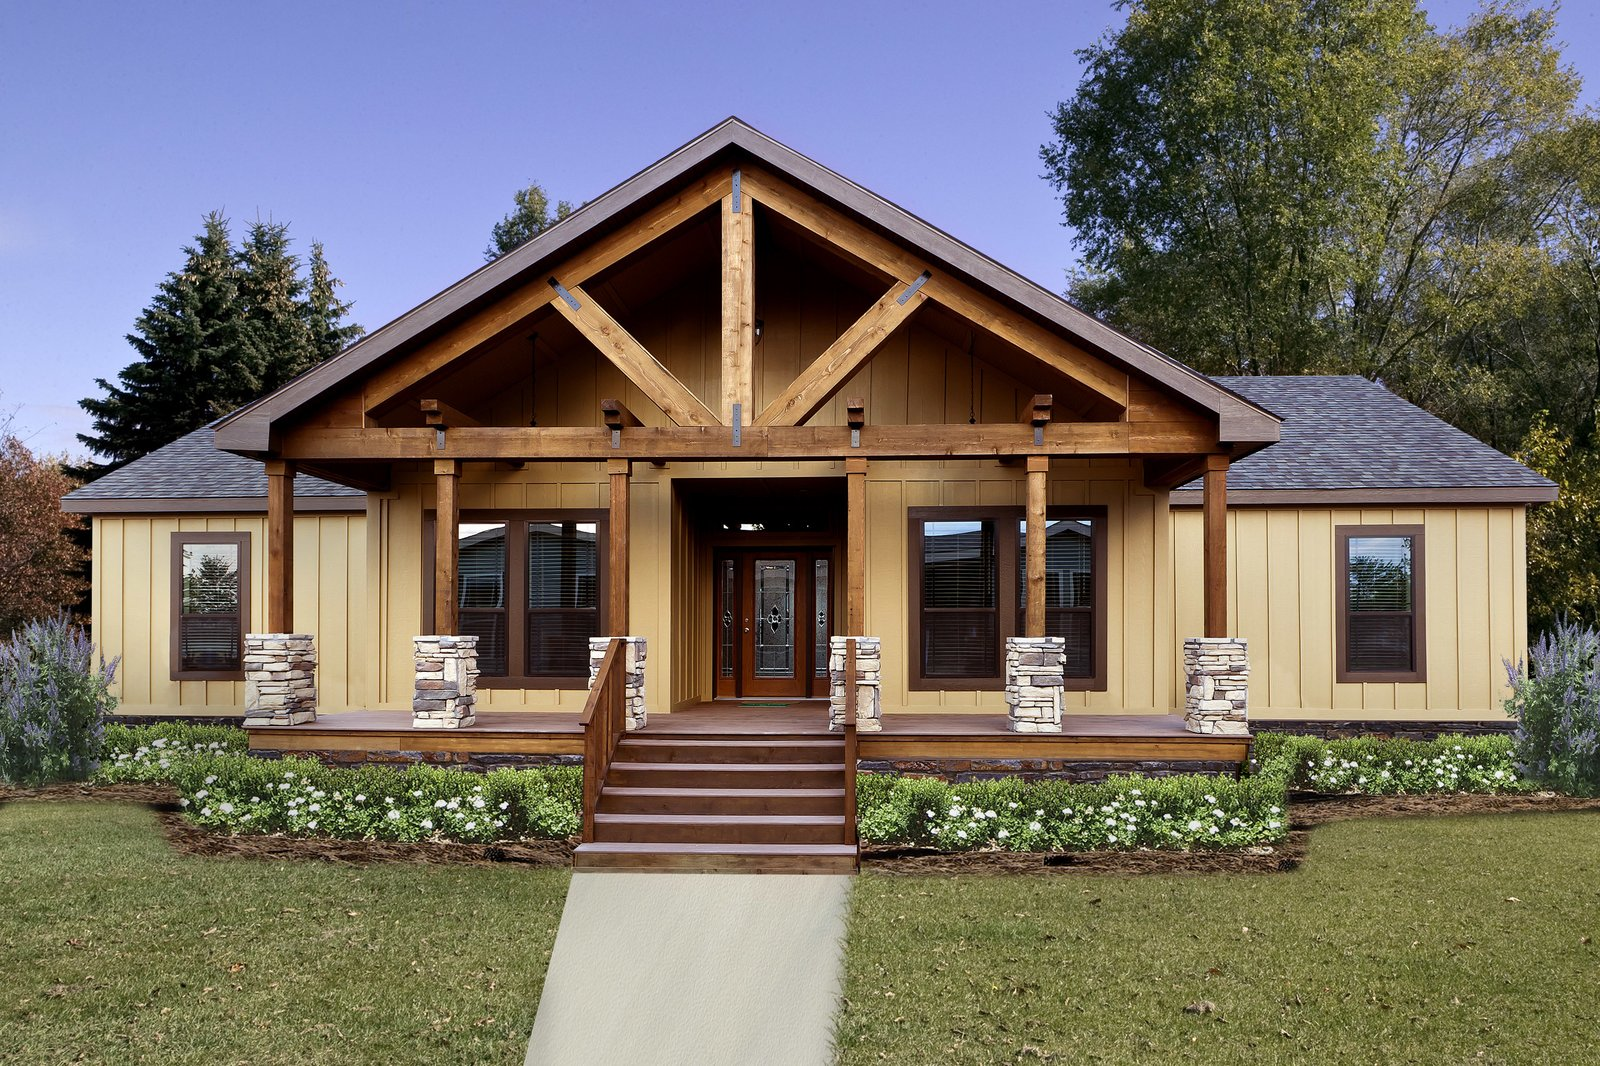 Pratt modular homes are budget friendly and customizable, with over 300 standard kit home floor plans to choose from with an infinite number of possibilities.  Photo 9 of 11 in 10 Kit Home Companies in the South